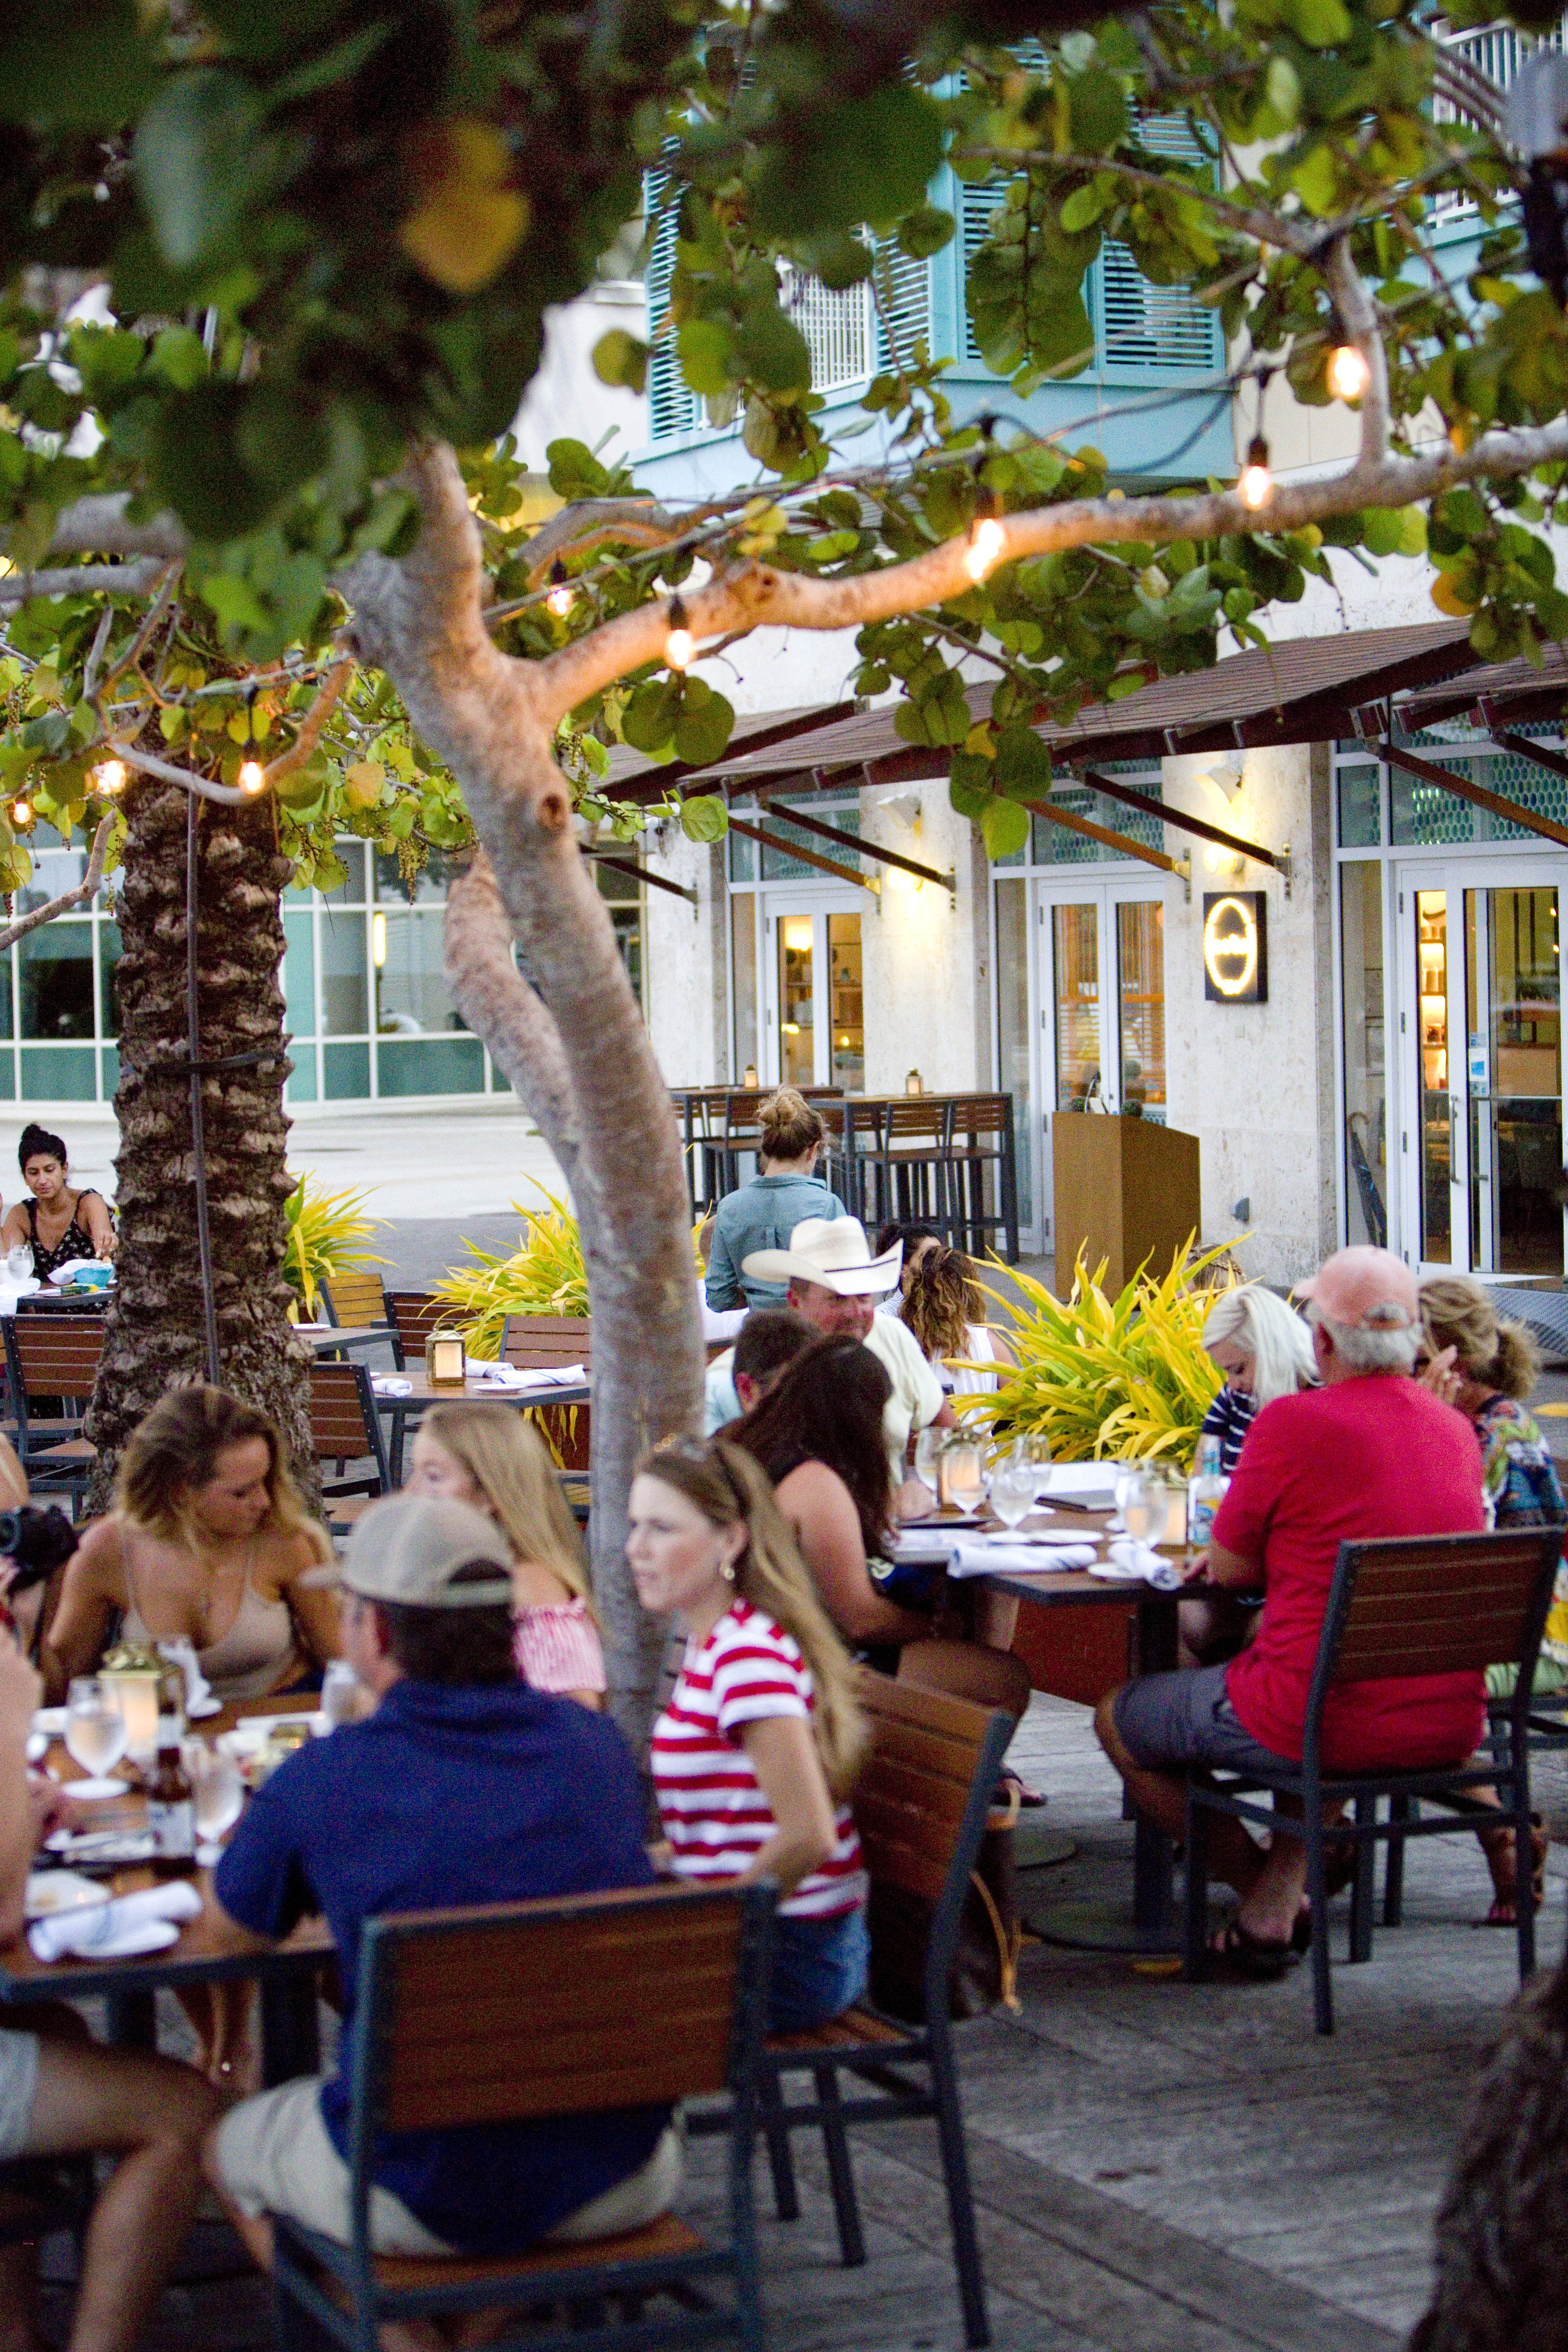 People eating outside of Agua Cayman